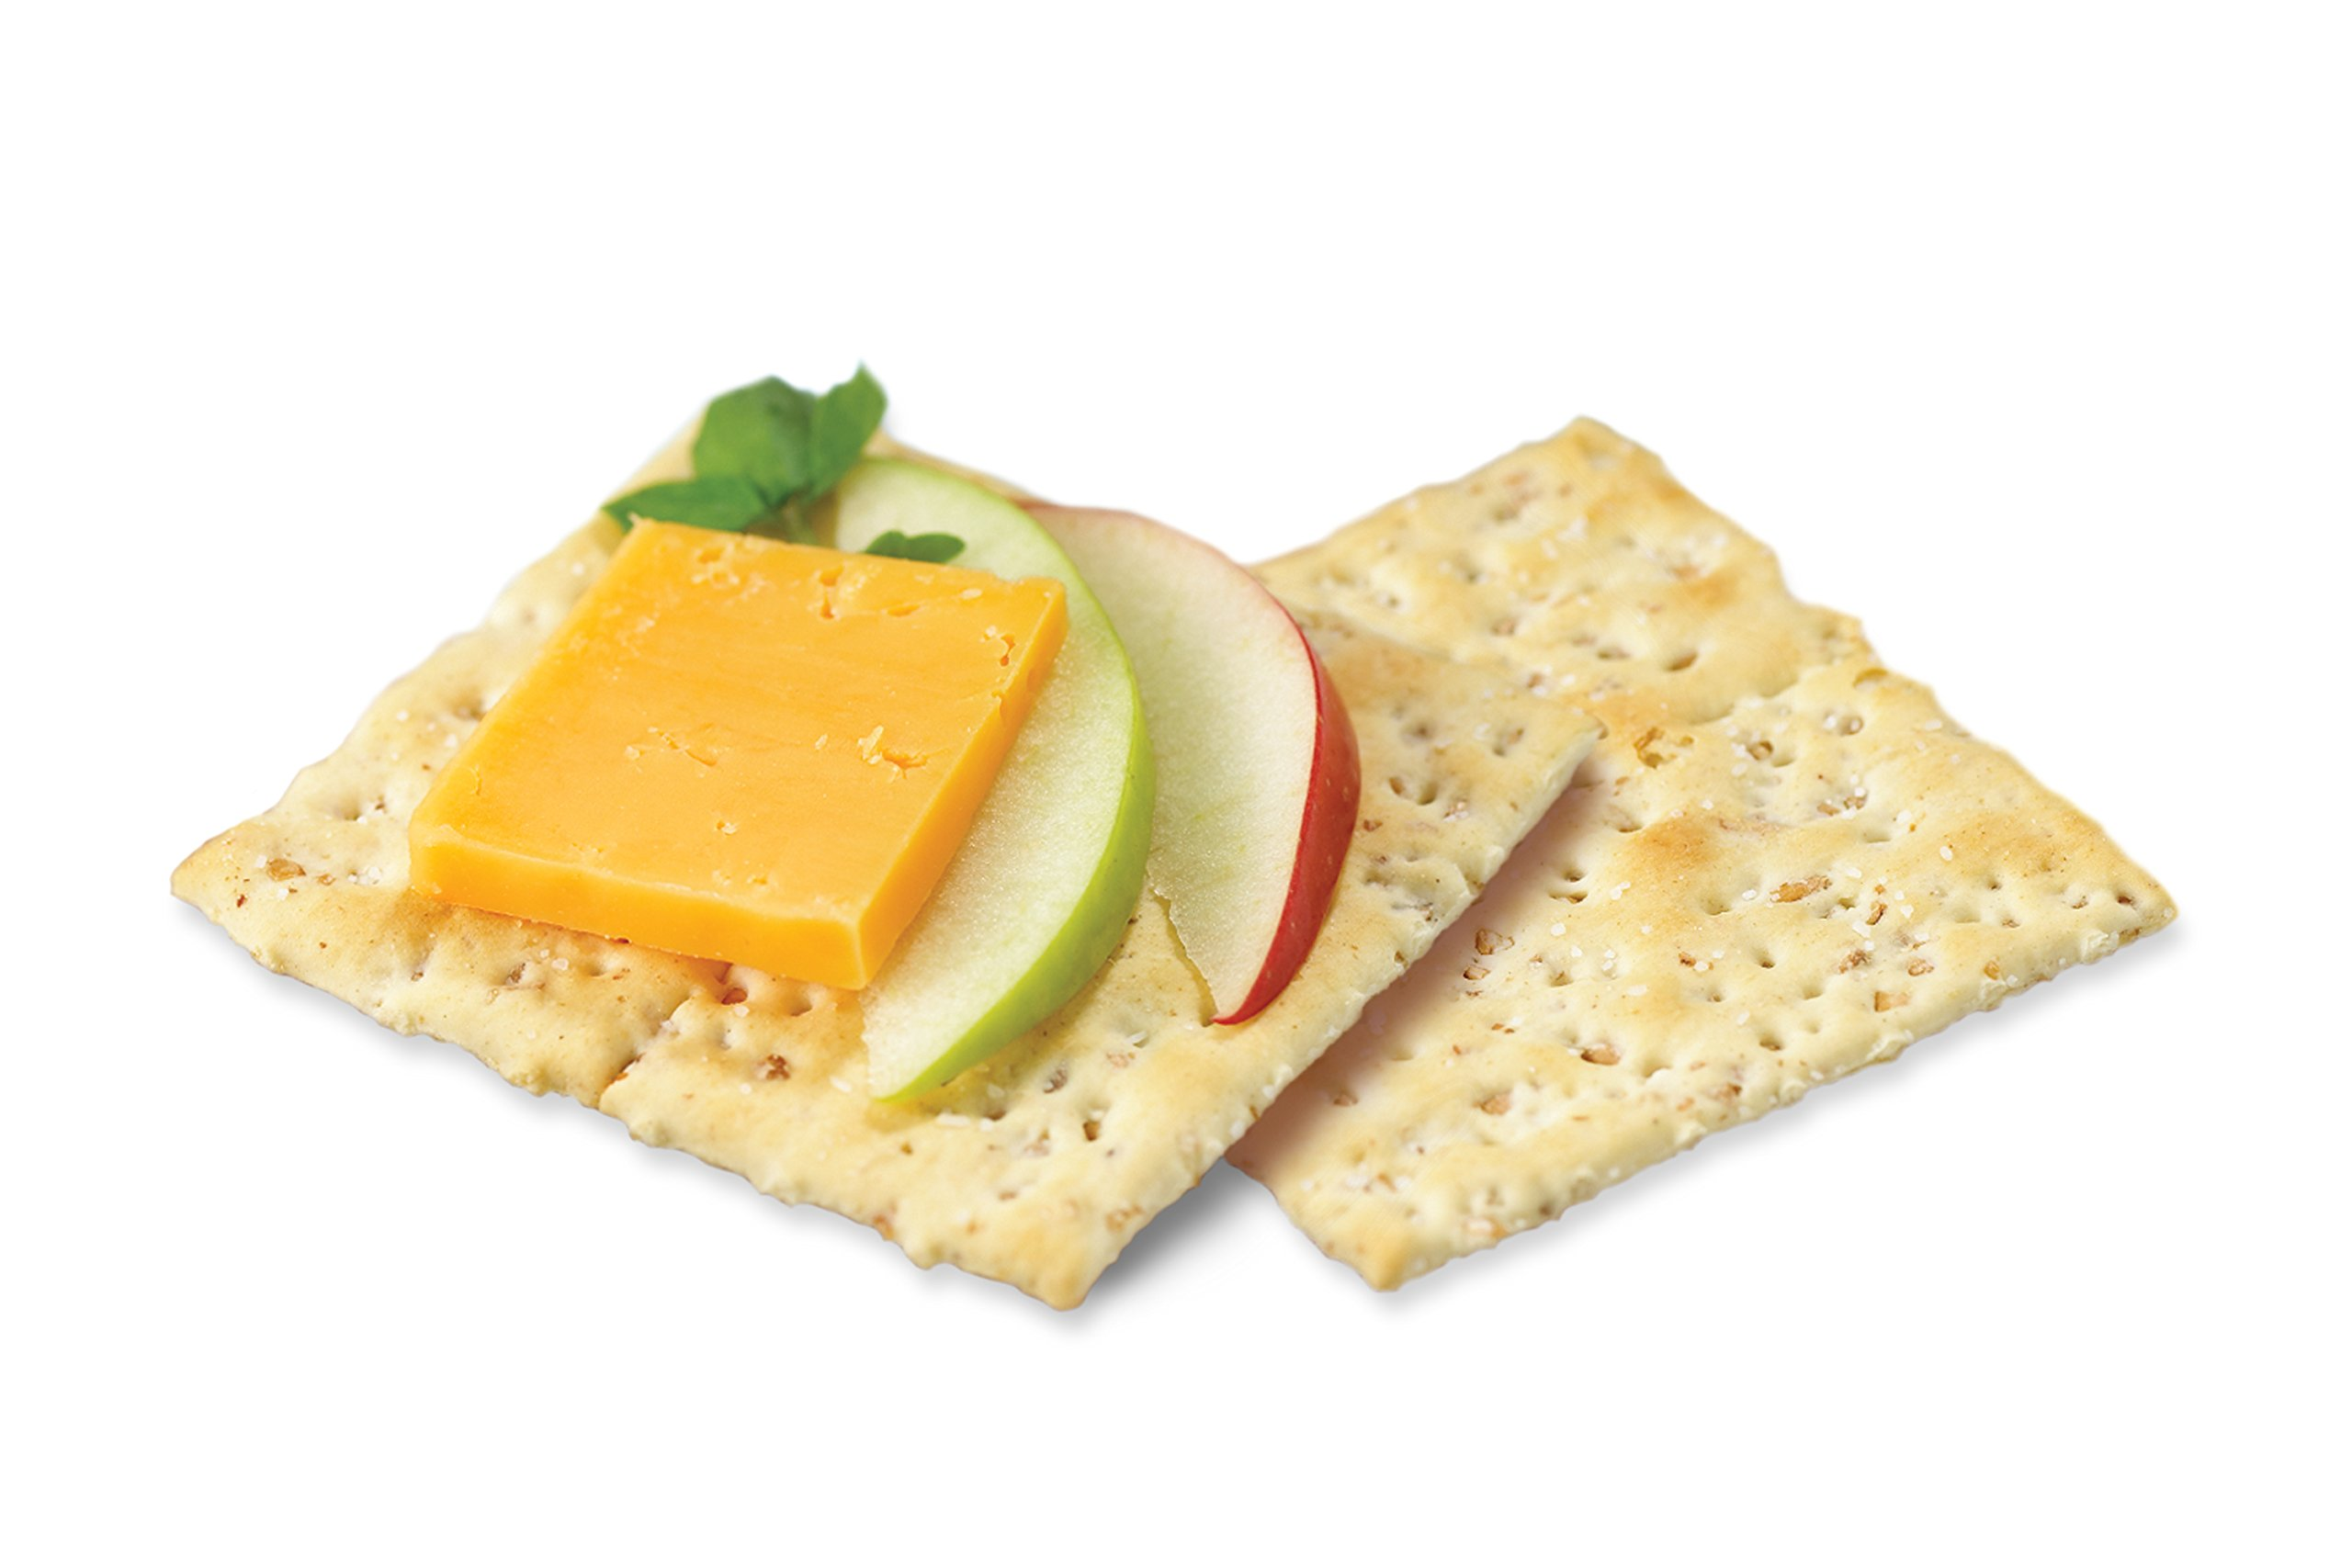 Red Oval Farms Stoned Wheat Thin Crackers, 10.6 Ounce (Pack of 12) by Wheat Thins (Image #3)